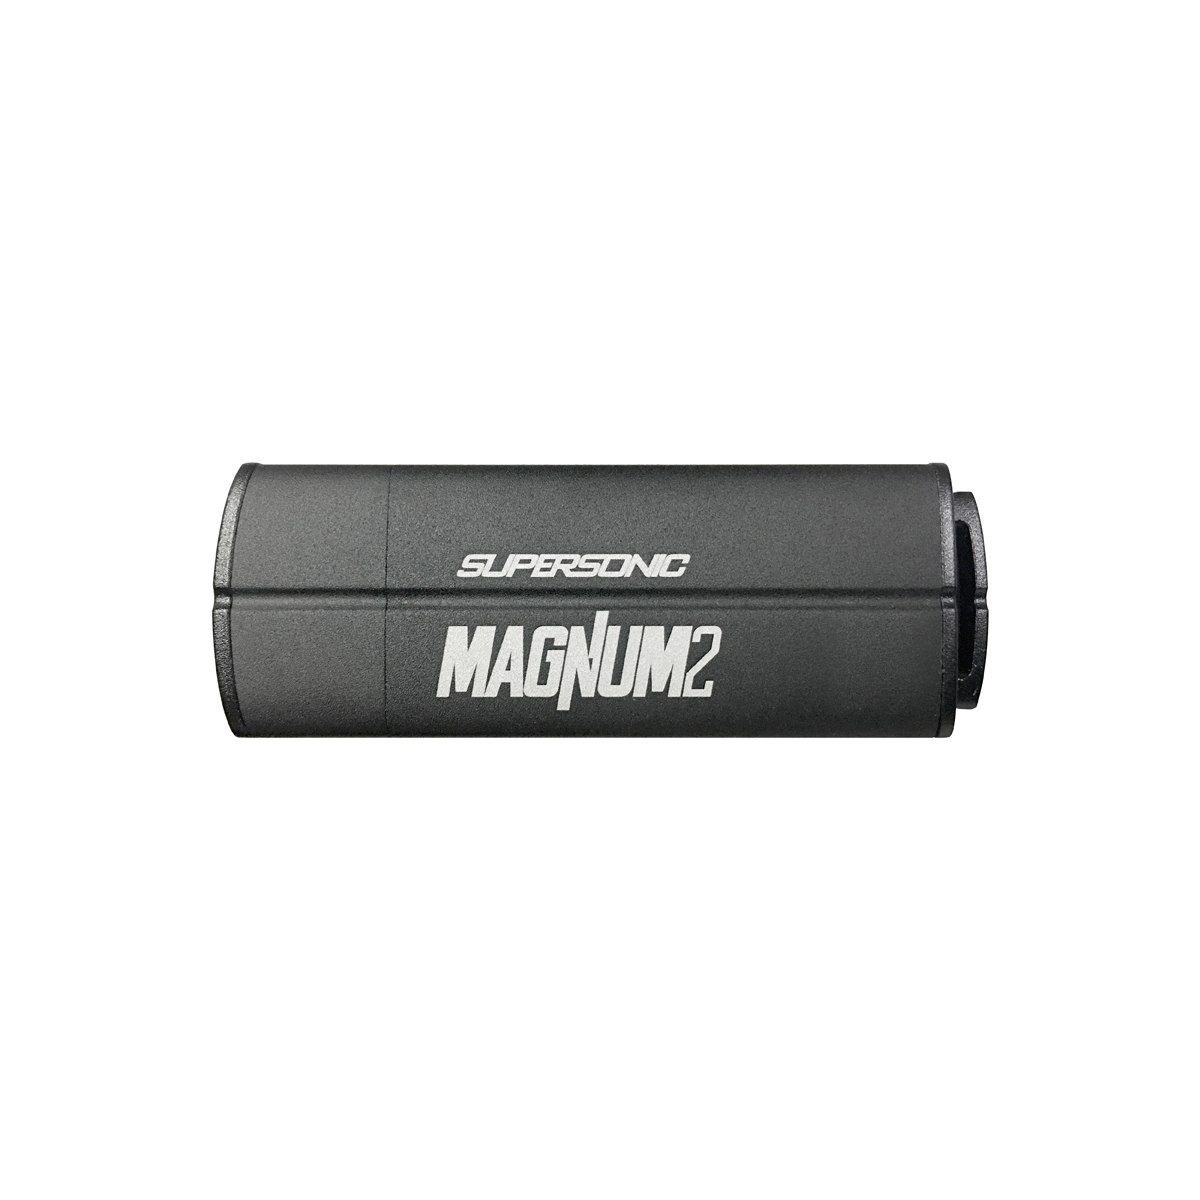 Flash disk Patriot Supersonic Magnum 2 512GB USB 3.0